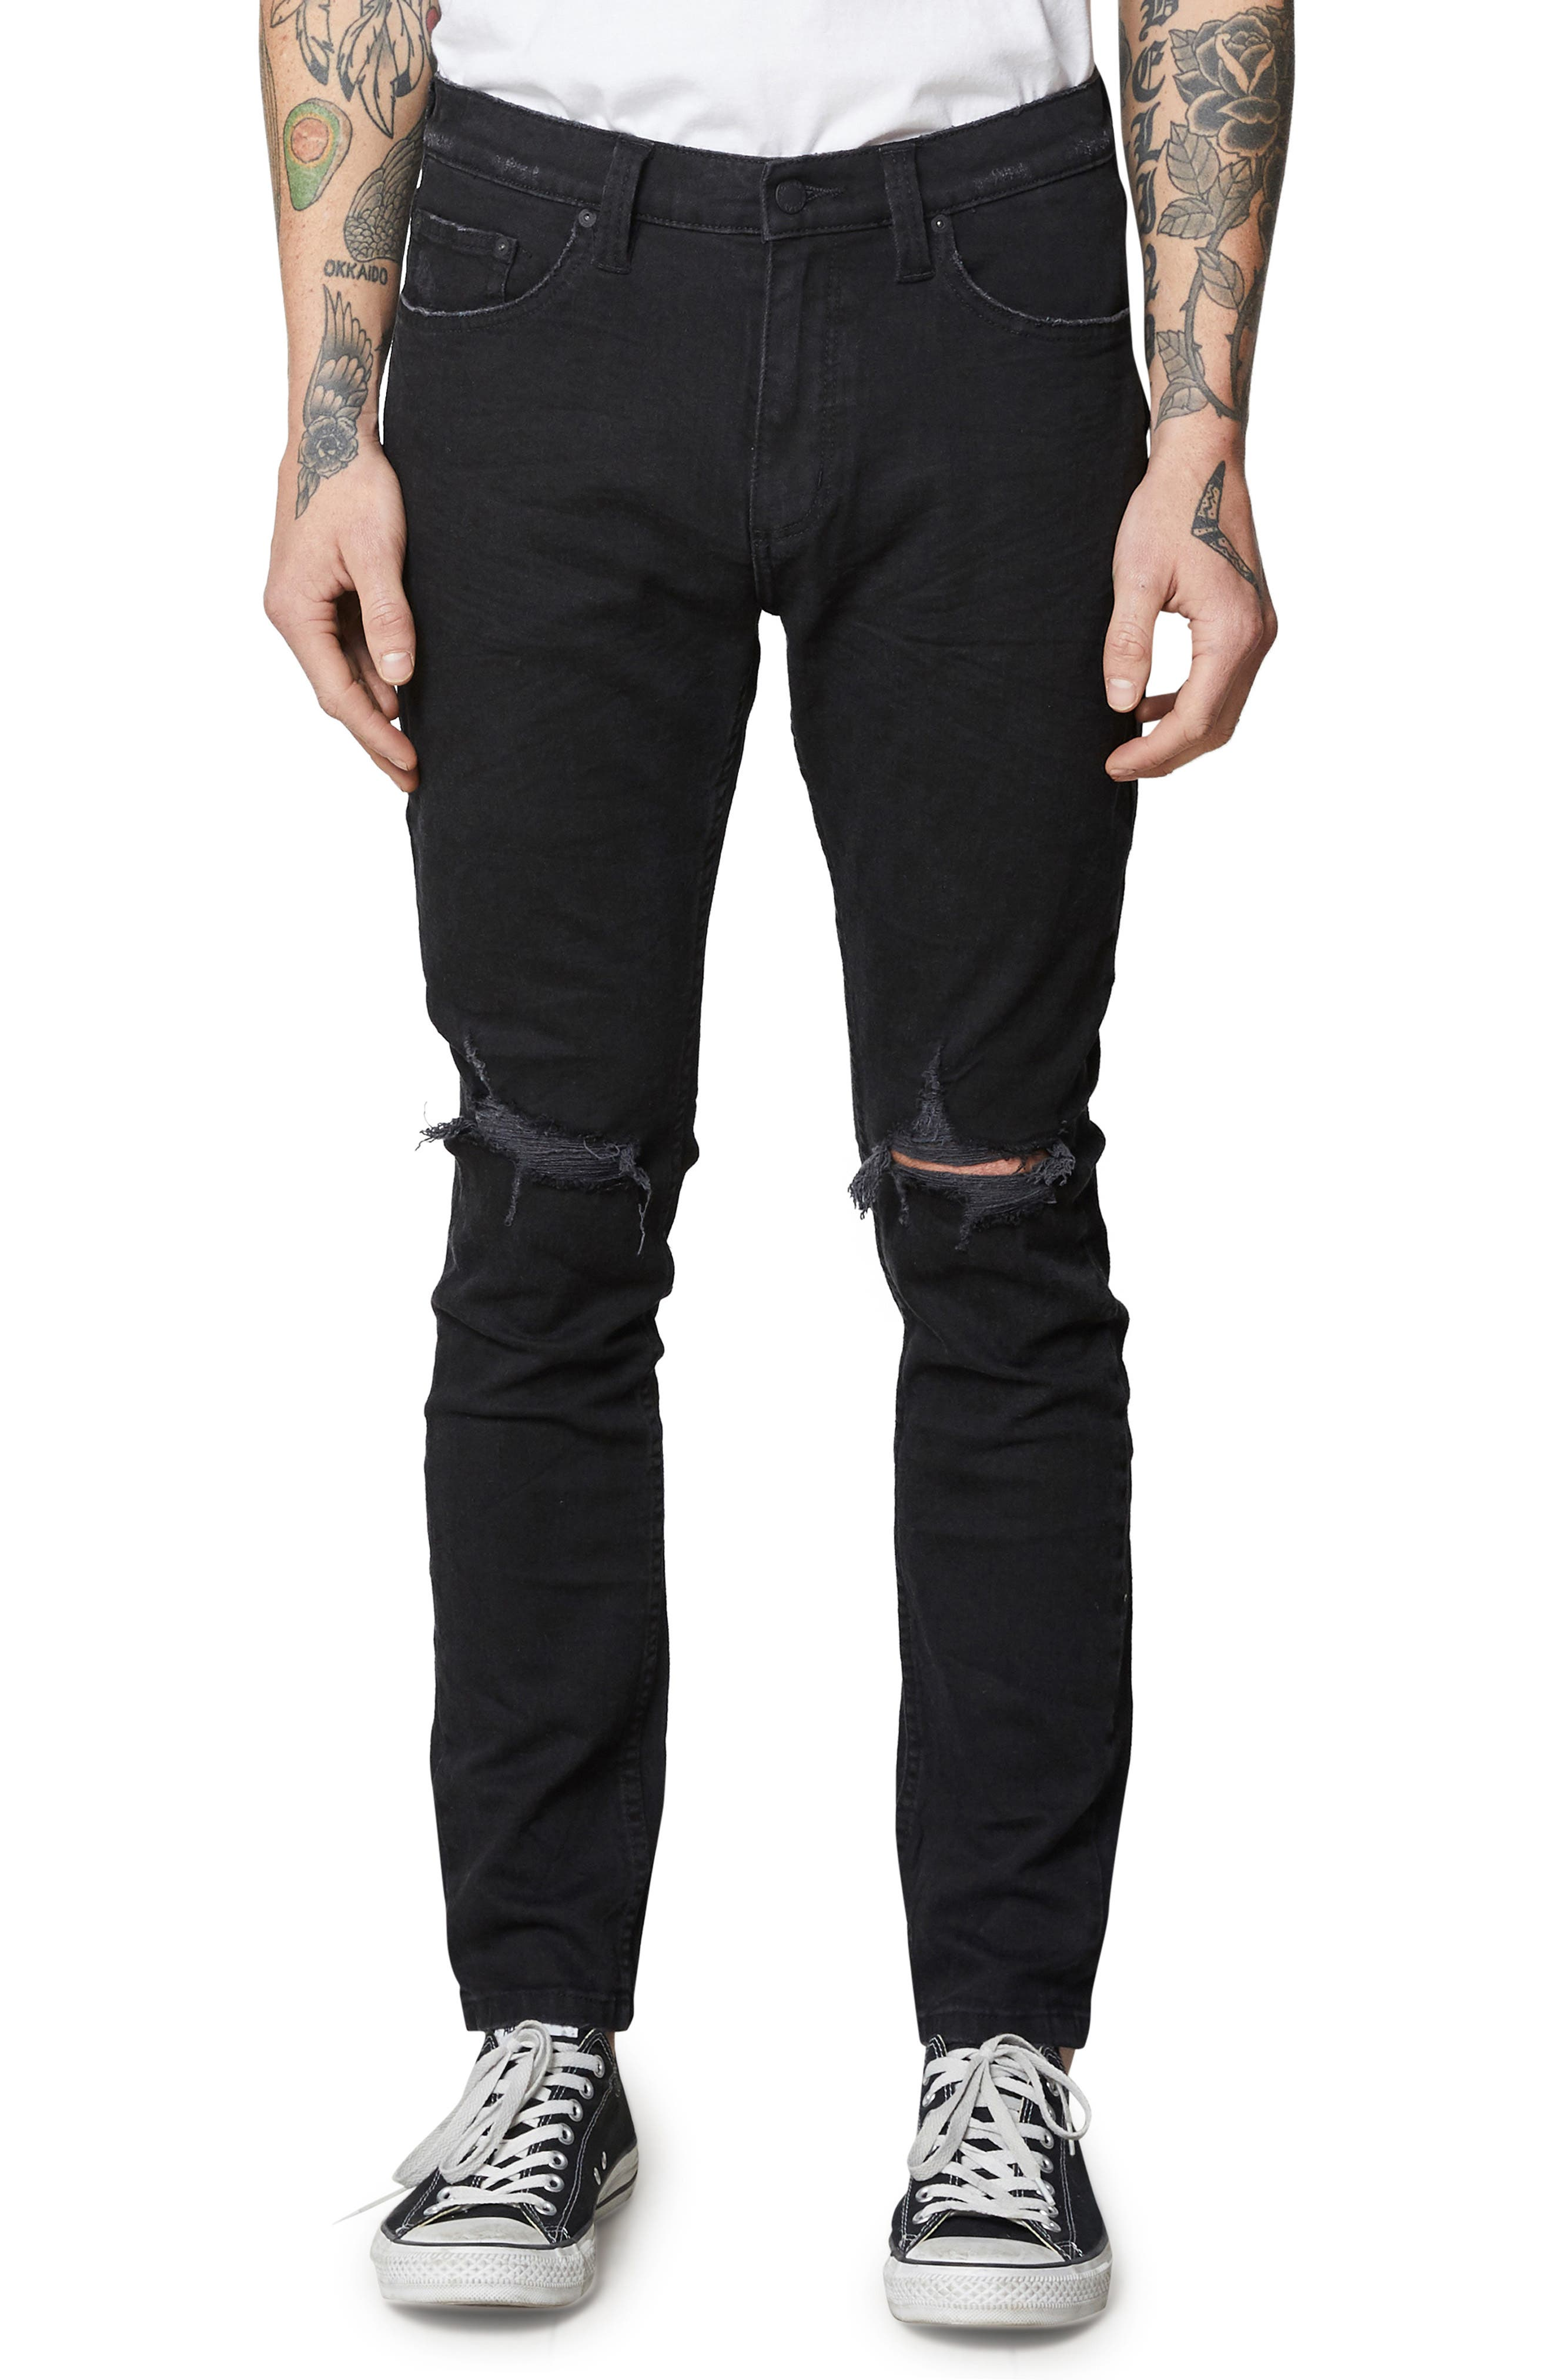 Stinger Skinny Fit Jeans,                         Main,                         color, BLACK RIP